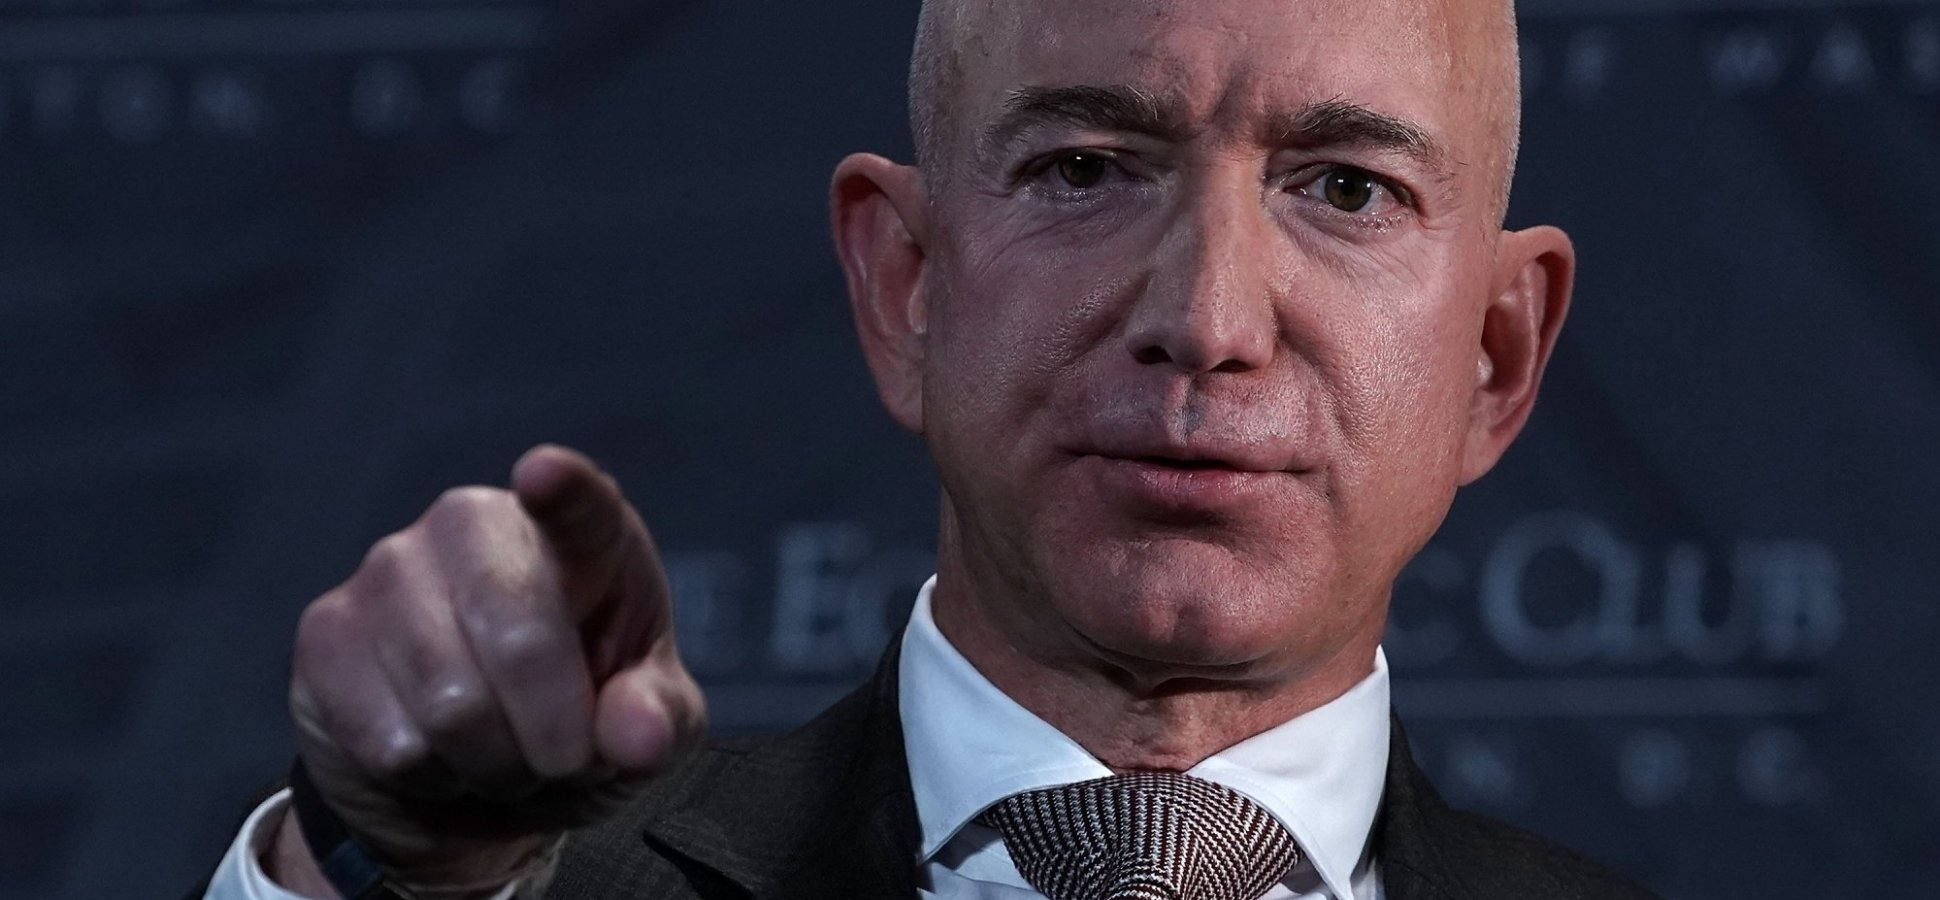 17 Jeff Bezos Quotes That Suddenly Take on a Whole New Meaning (After 2 Stunning Decisions)